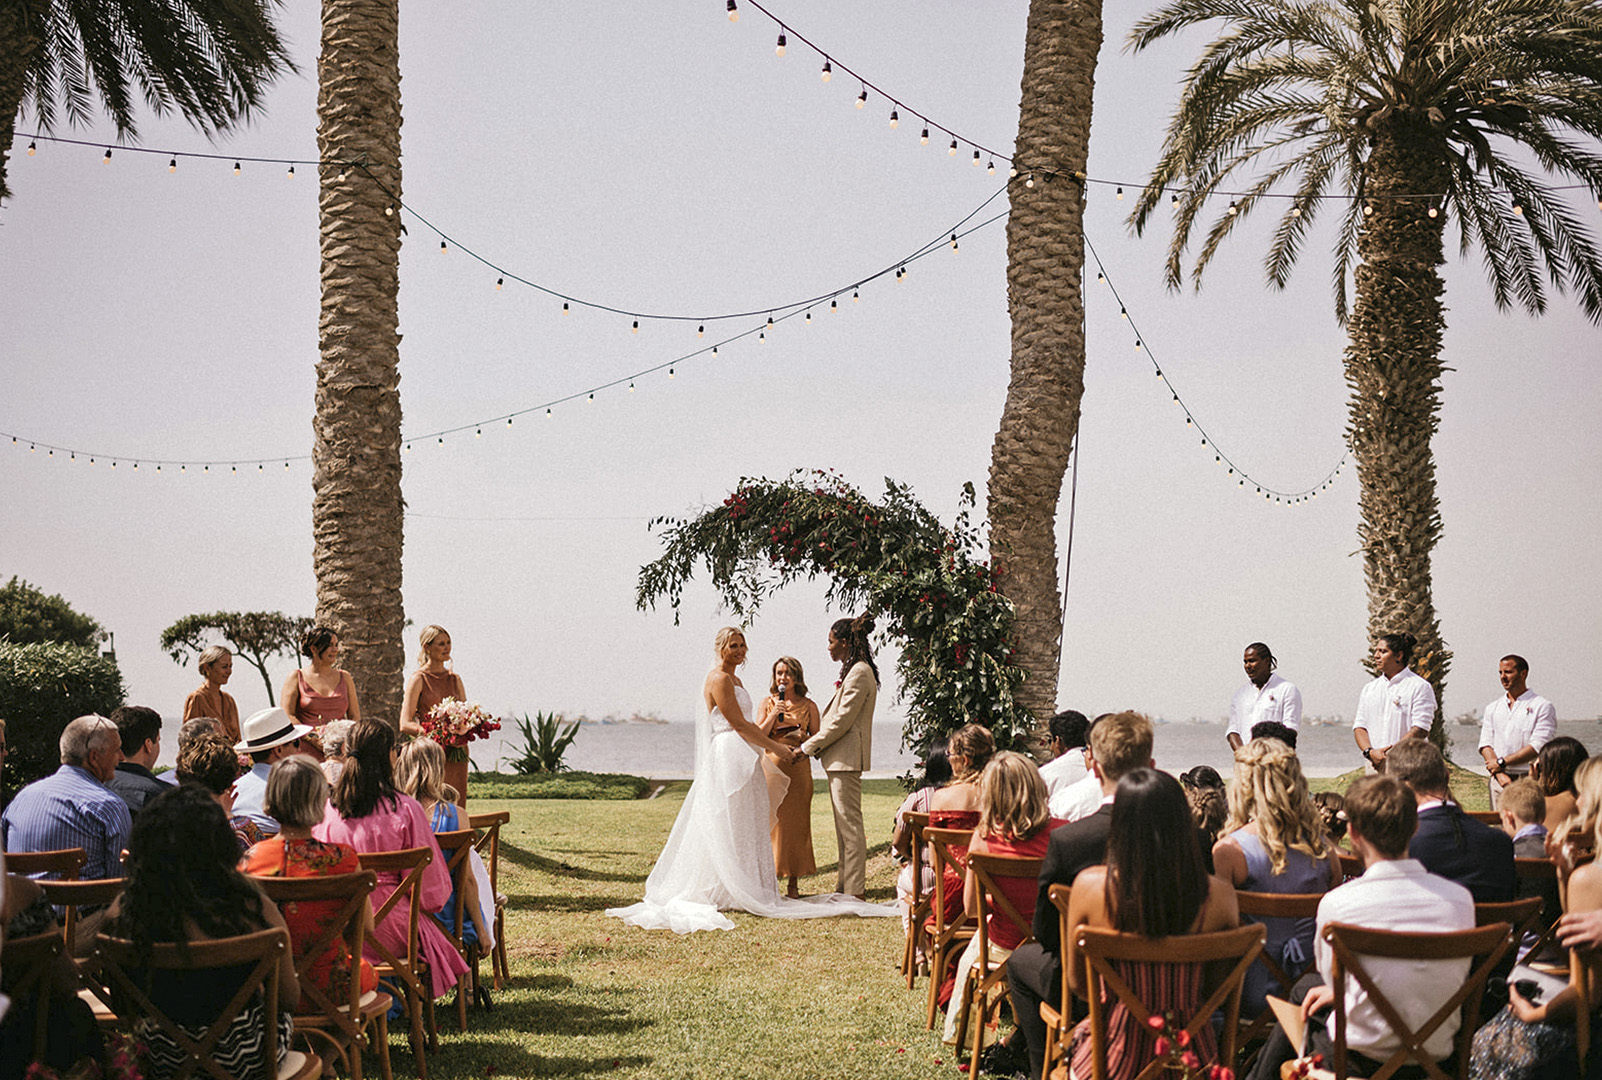 Wedding ceremony in paracas